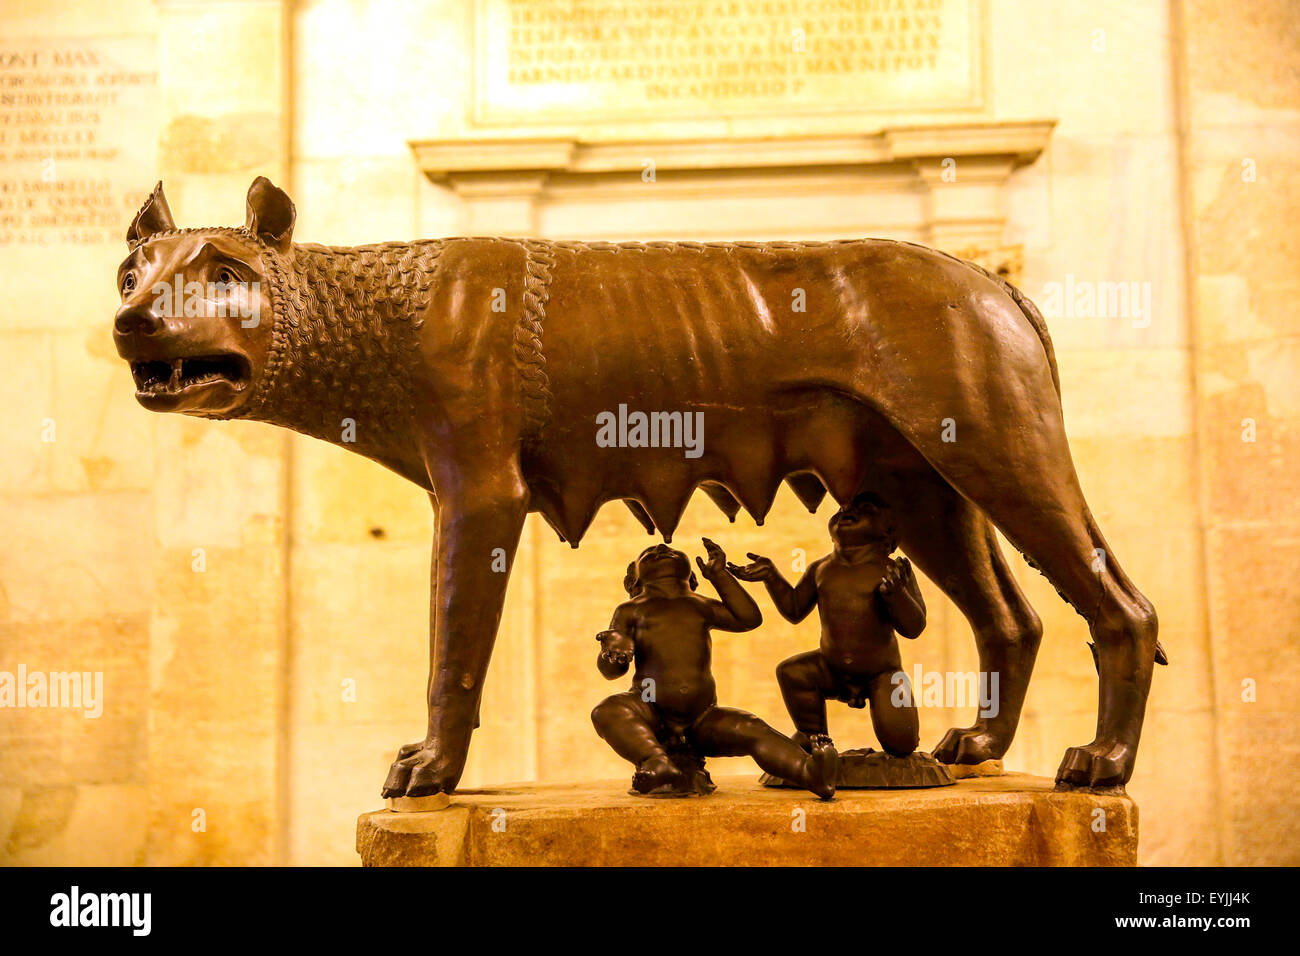 The Capitoline She-Wolf bronze statue featuring the mythical twins Romulus and Remus in the Capitoline Museum Rome - Stock Image